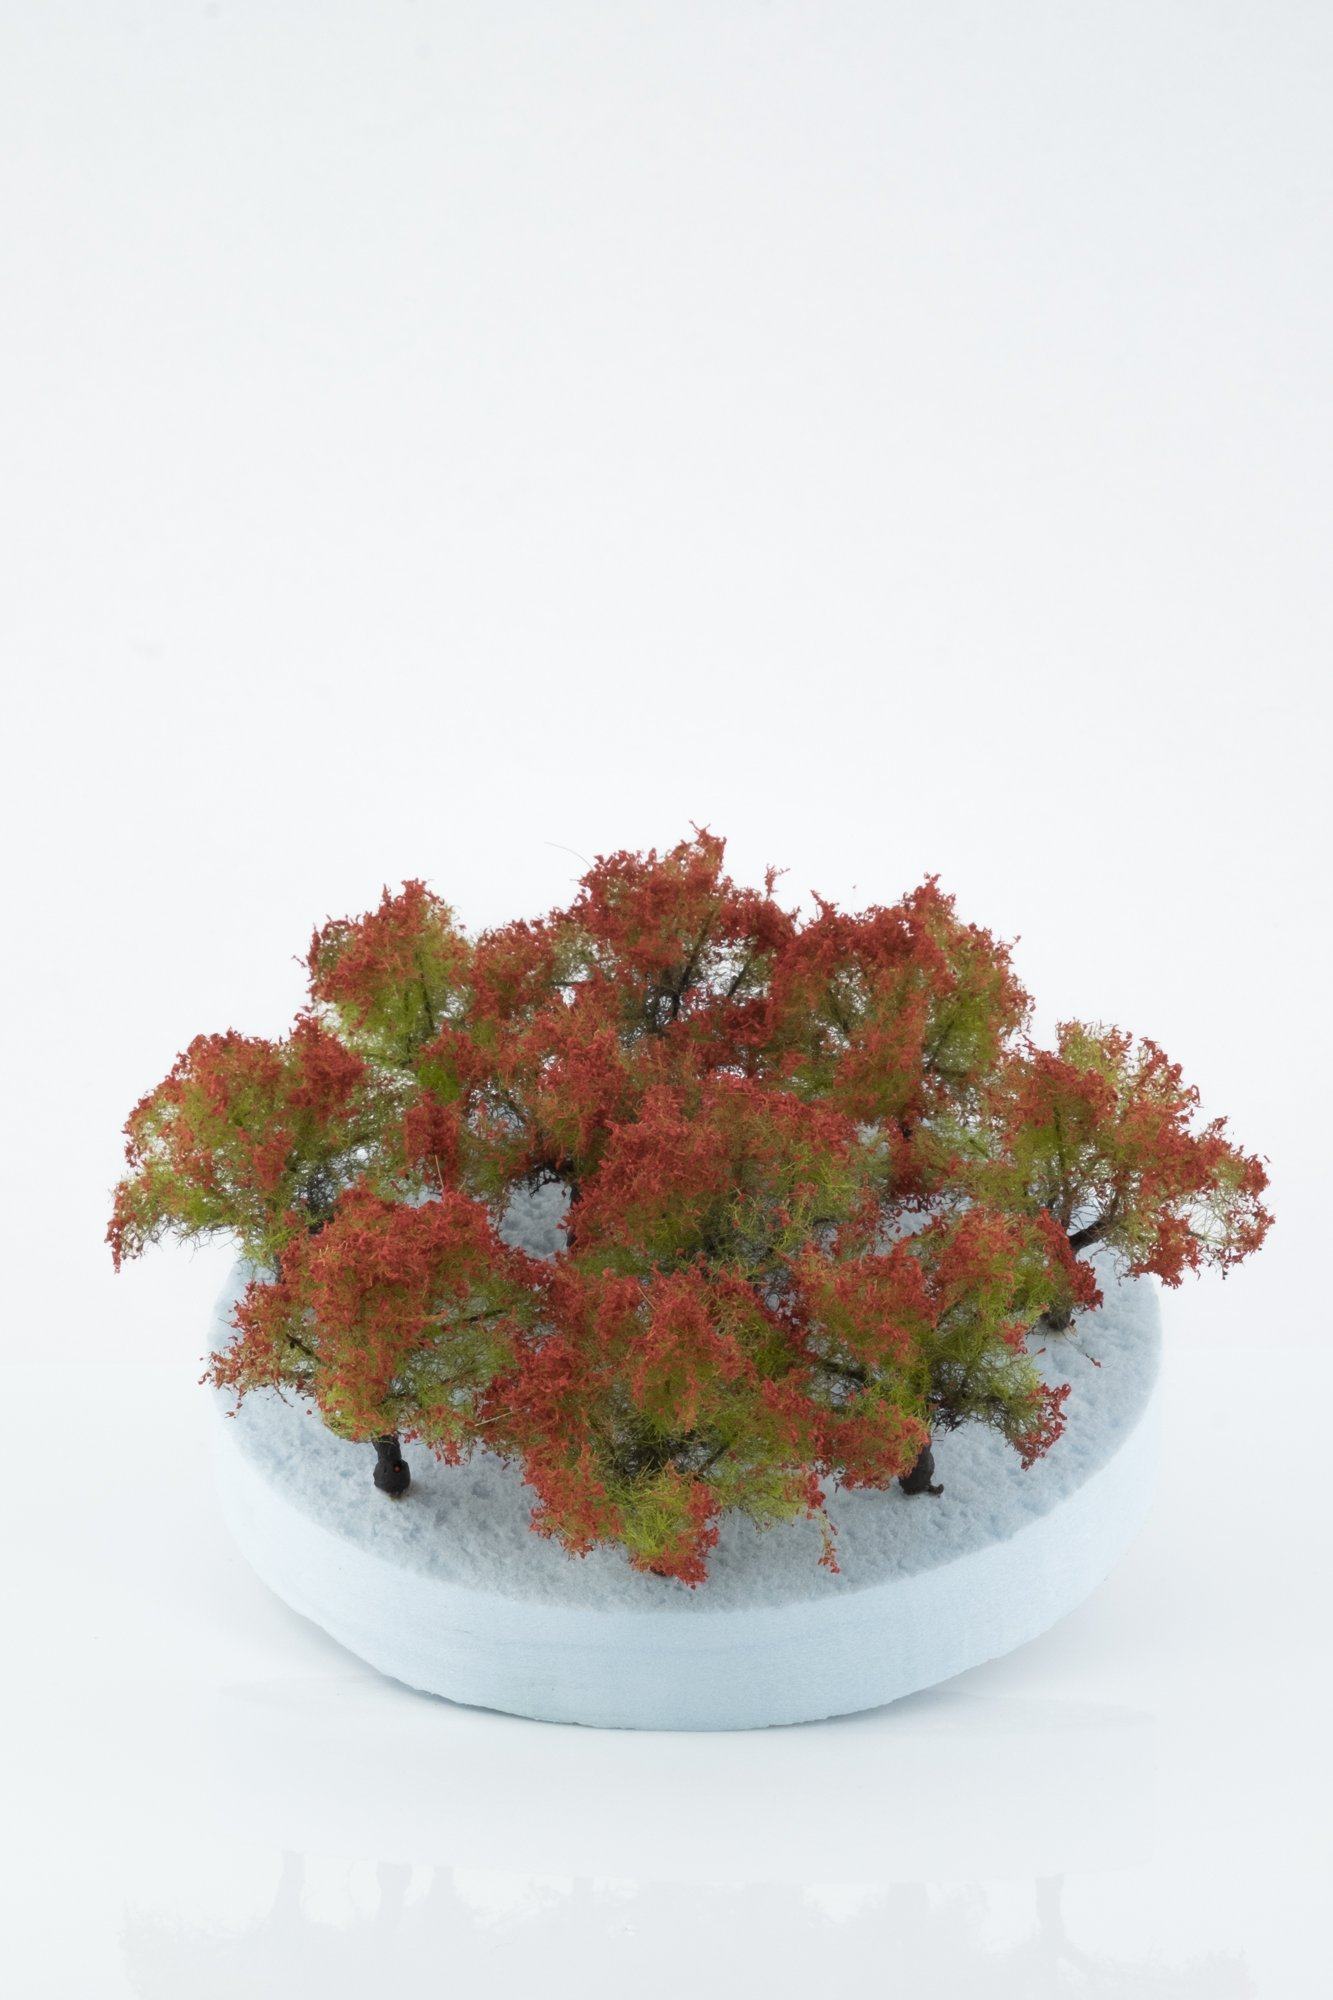 Ten pieces, regular red model bushes. Size between 2 and 4 cm. Made from high quality model supplies by Primo Models.